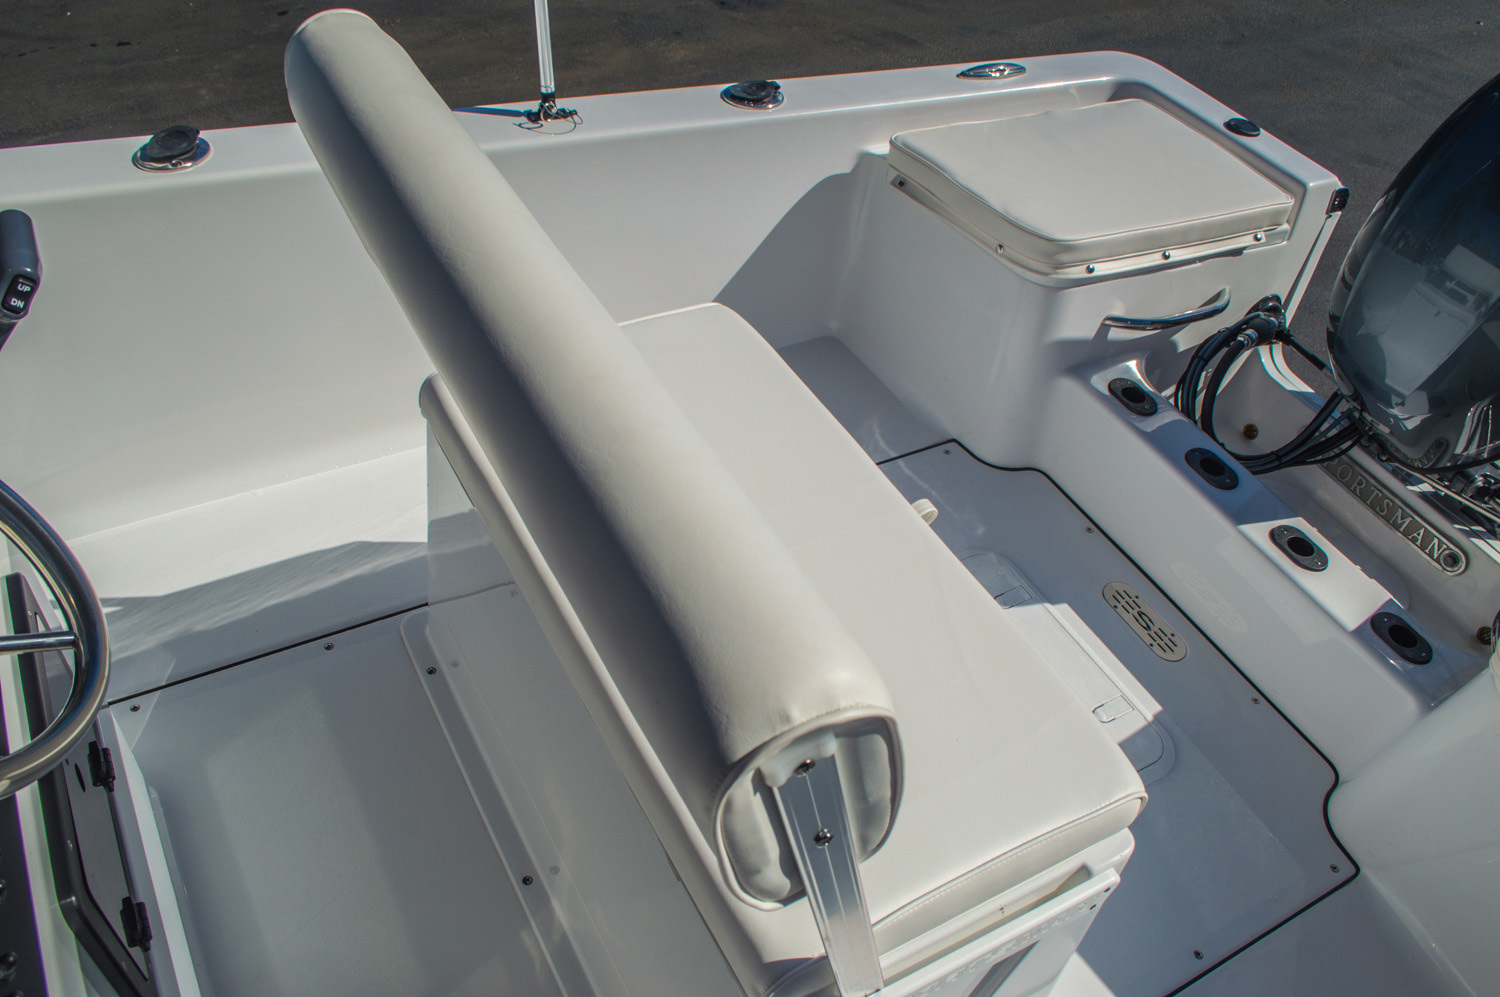 Thumbnail 19 for New 2016 Sportsman 17 Island Reef boat for sale in West Palm Beach, FL